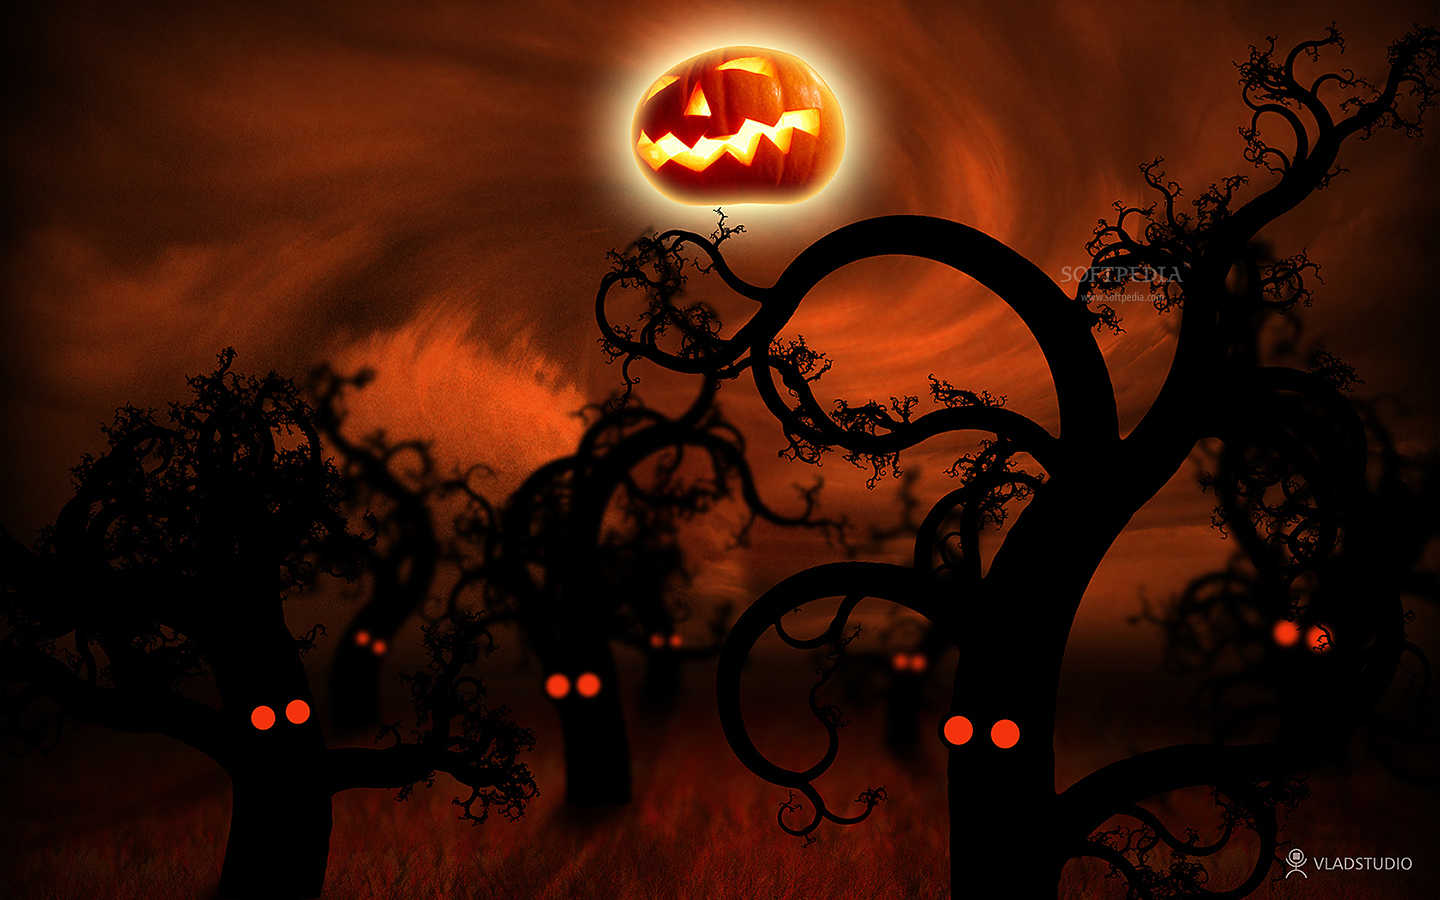 Vladstudio Halloween Wallpaper Set 1440x900